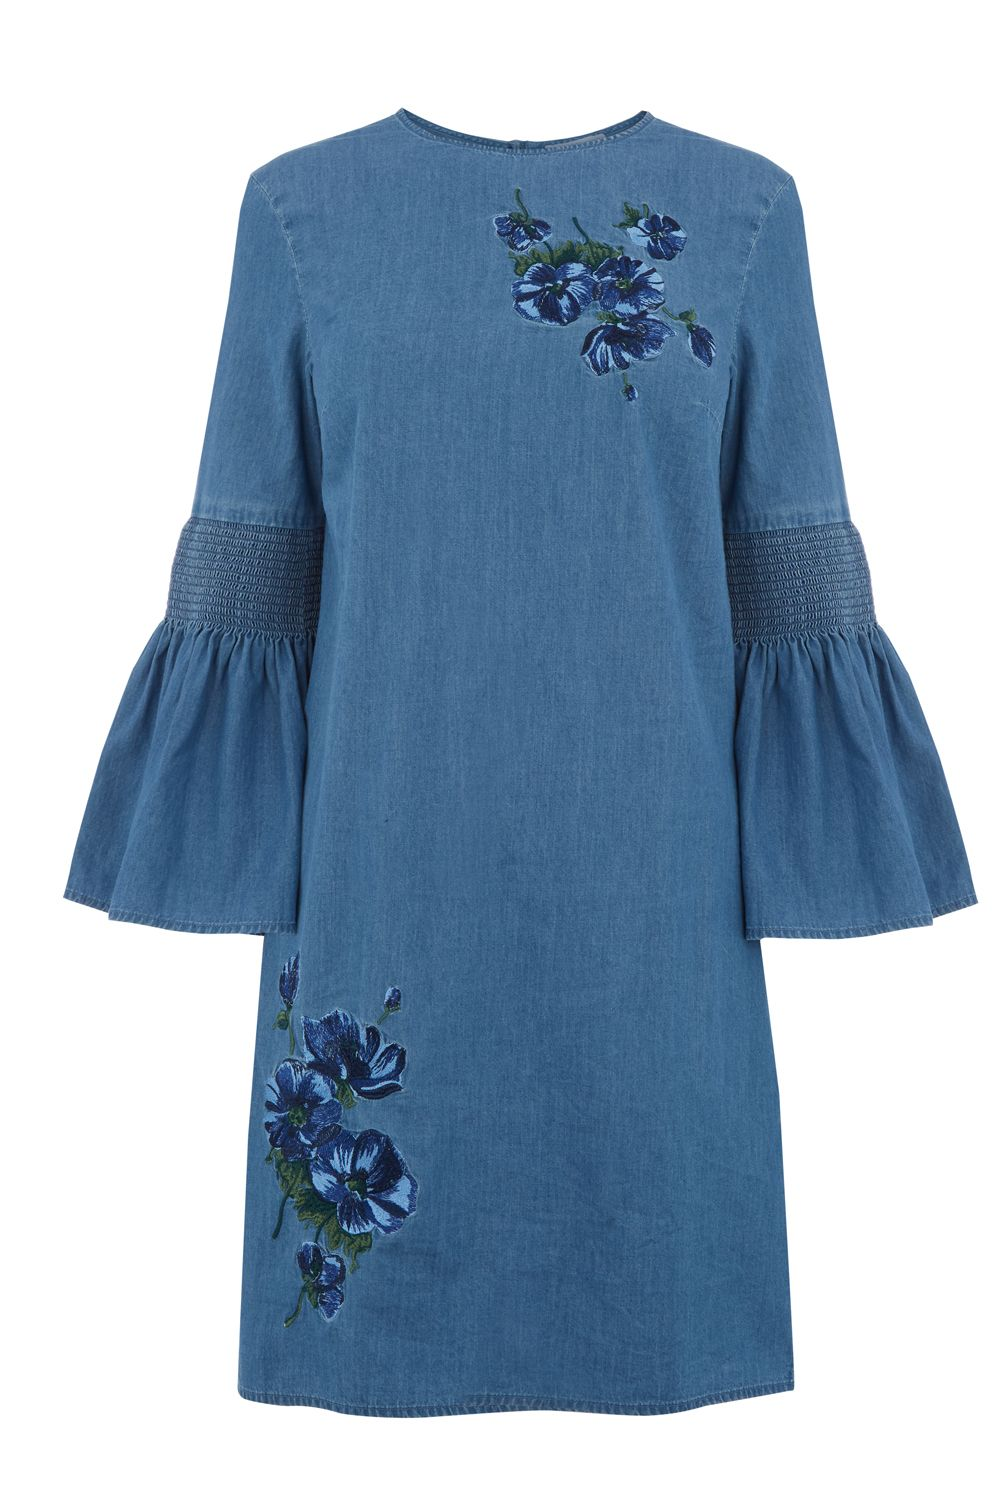 Warehouse Embroidered Dress, Denim